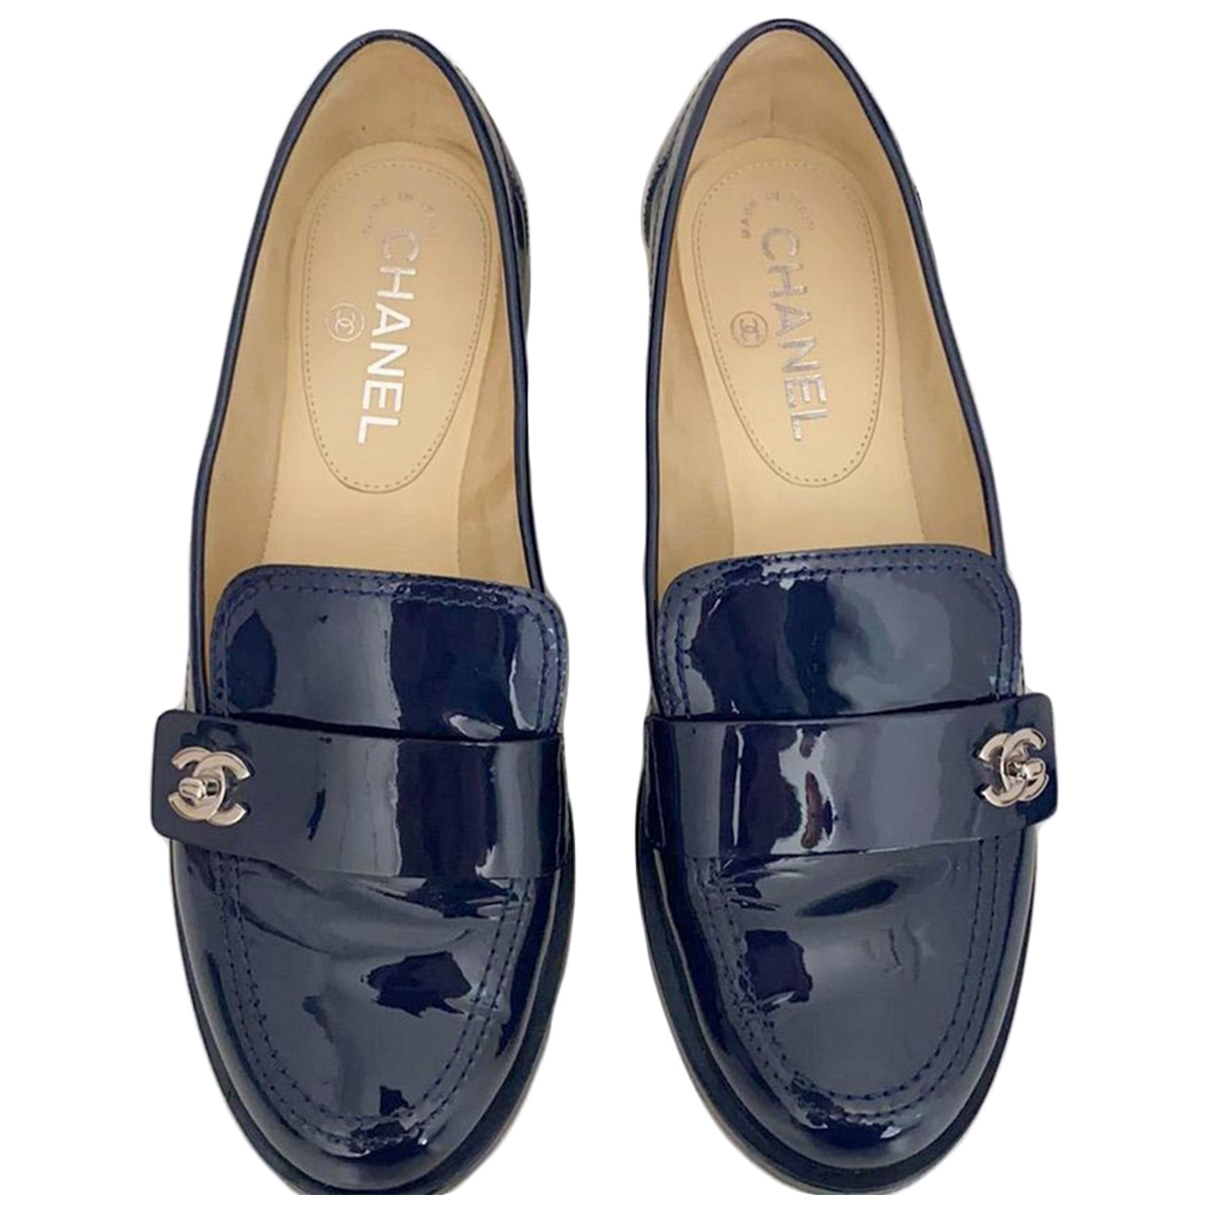 Chanel \N Navy Patent leather Flats for Women 38.5 EU